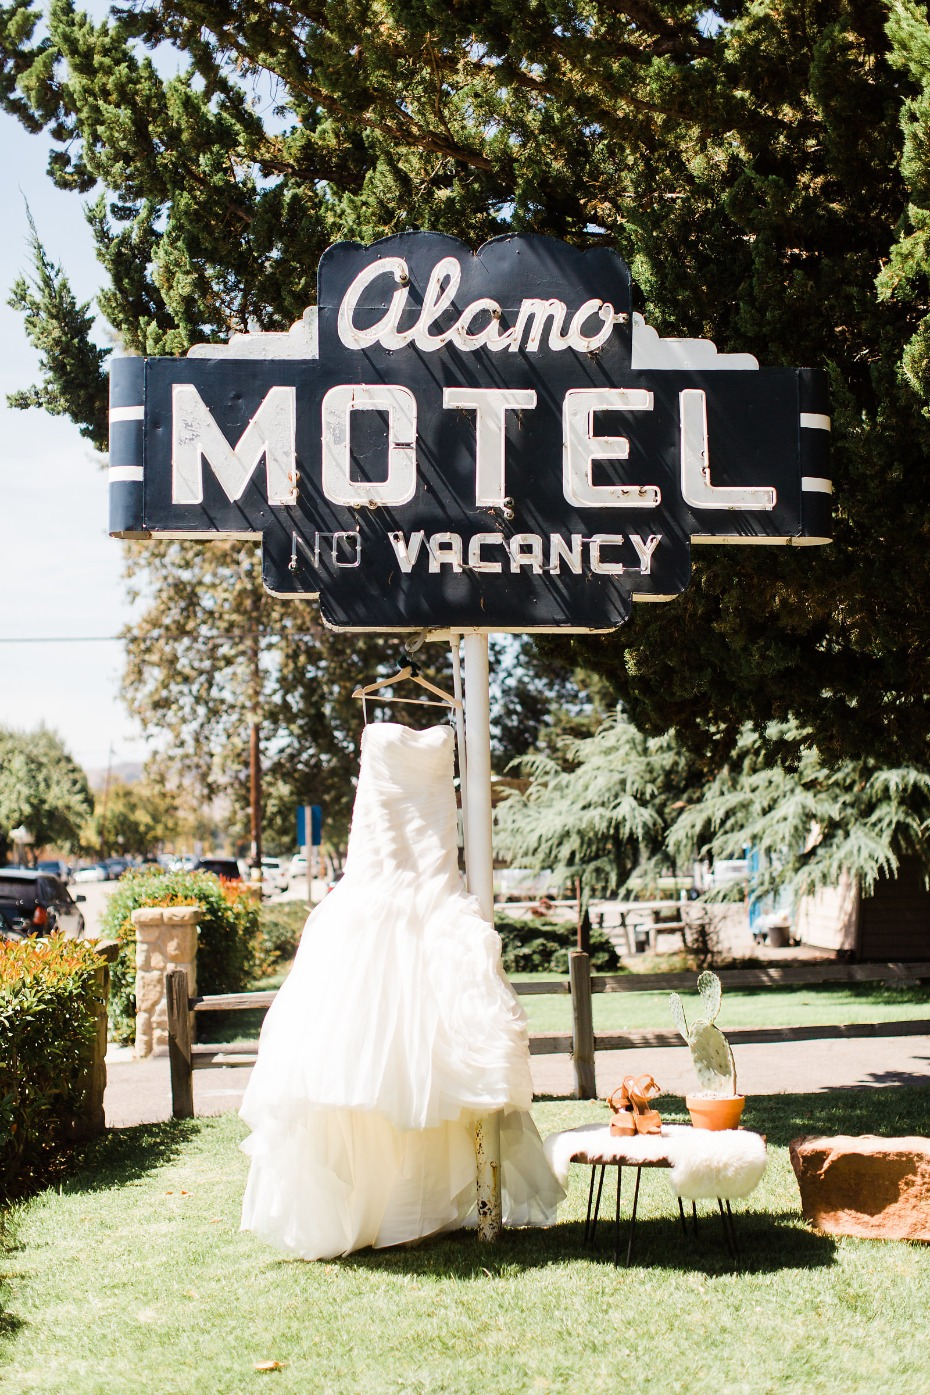 A desert chic wedding at the Alamo motel